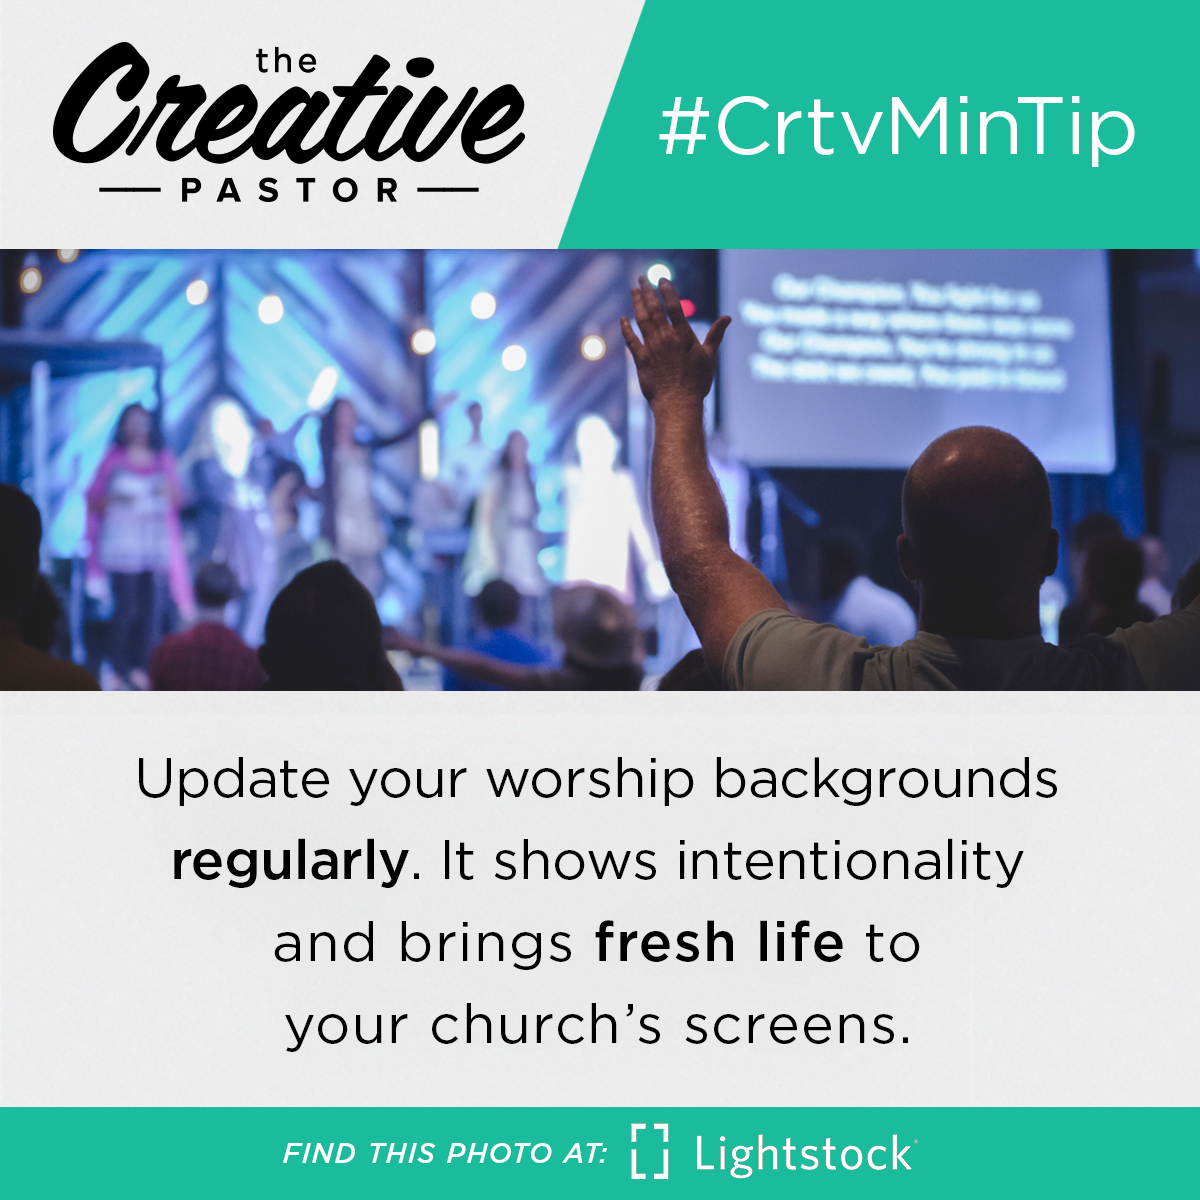 #CrtvMinTip: Update your worship backgrounds regularly. It shows intentionality and brings fresh life to your church's screens.